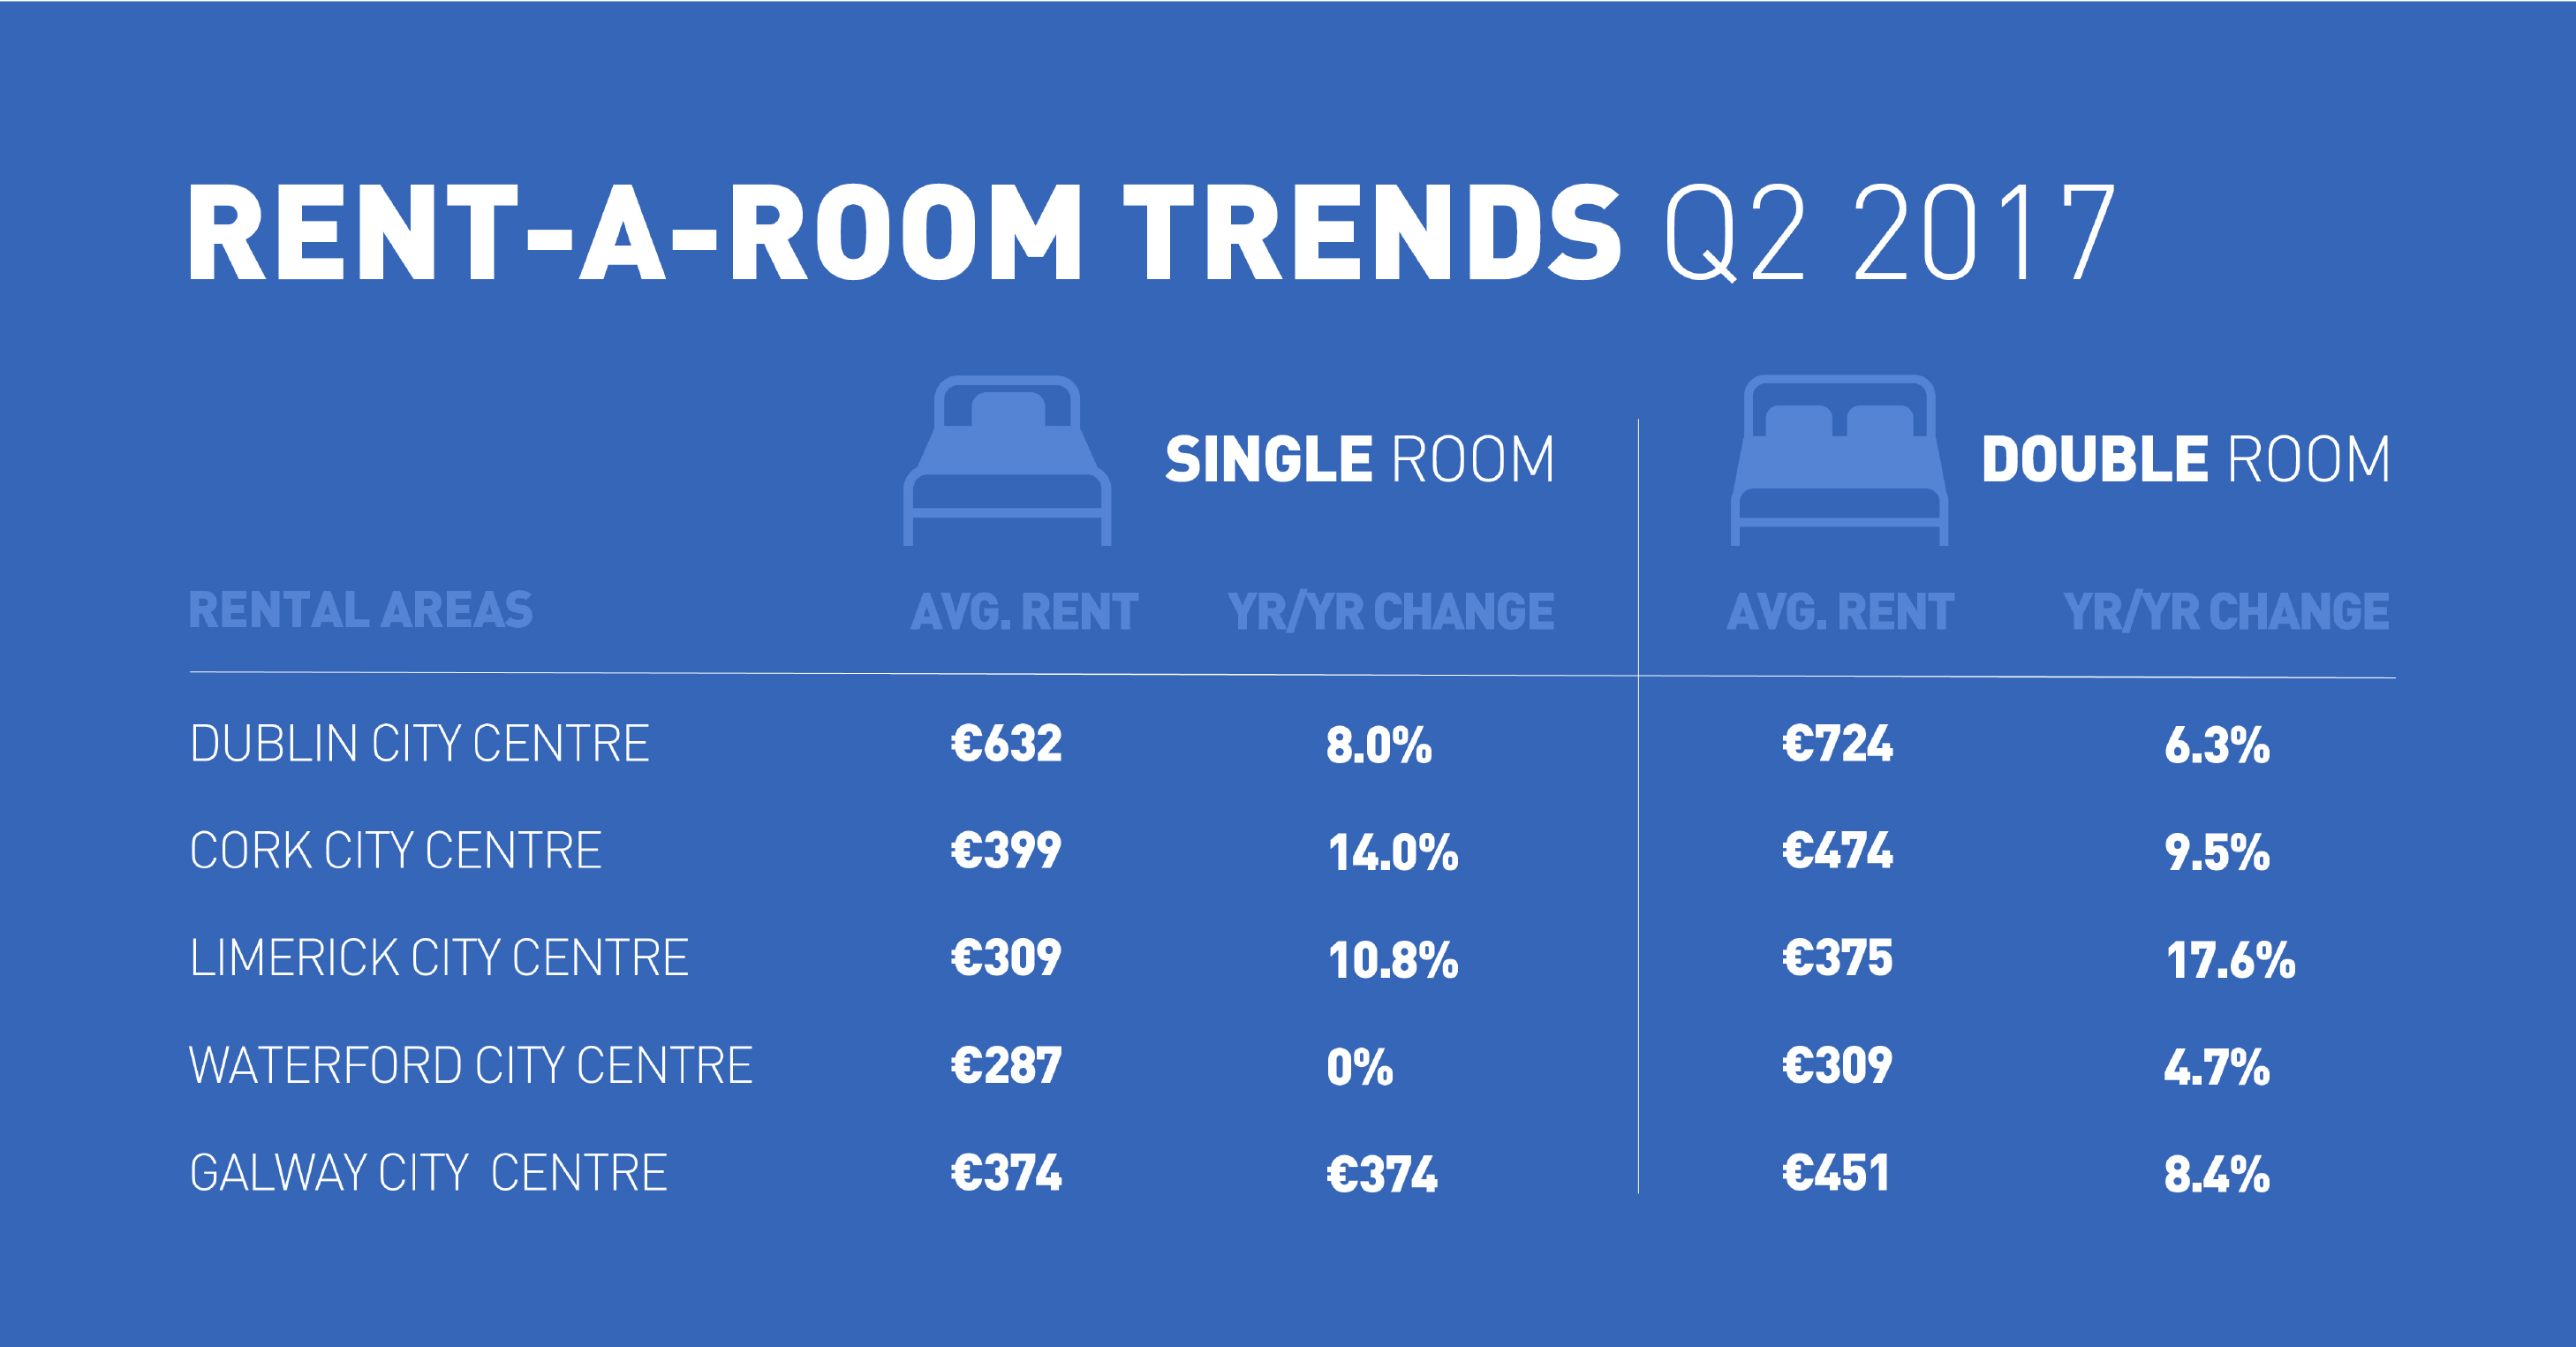 Room rental pricing trends